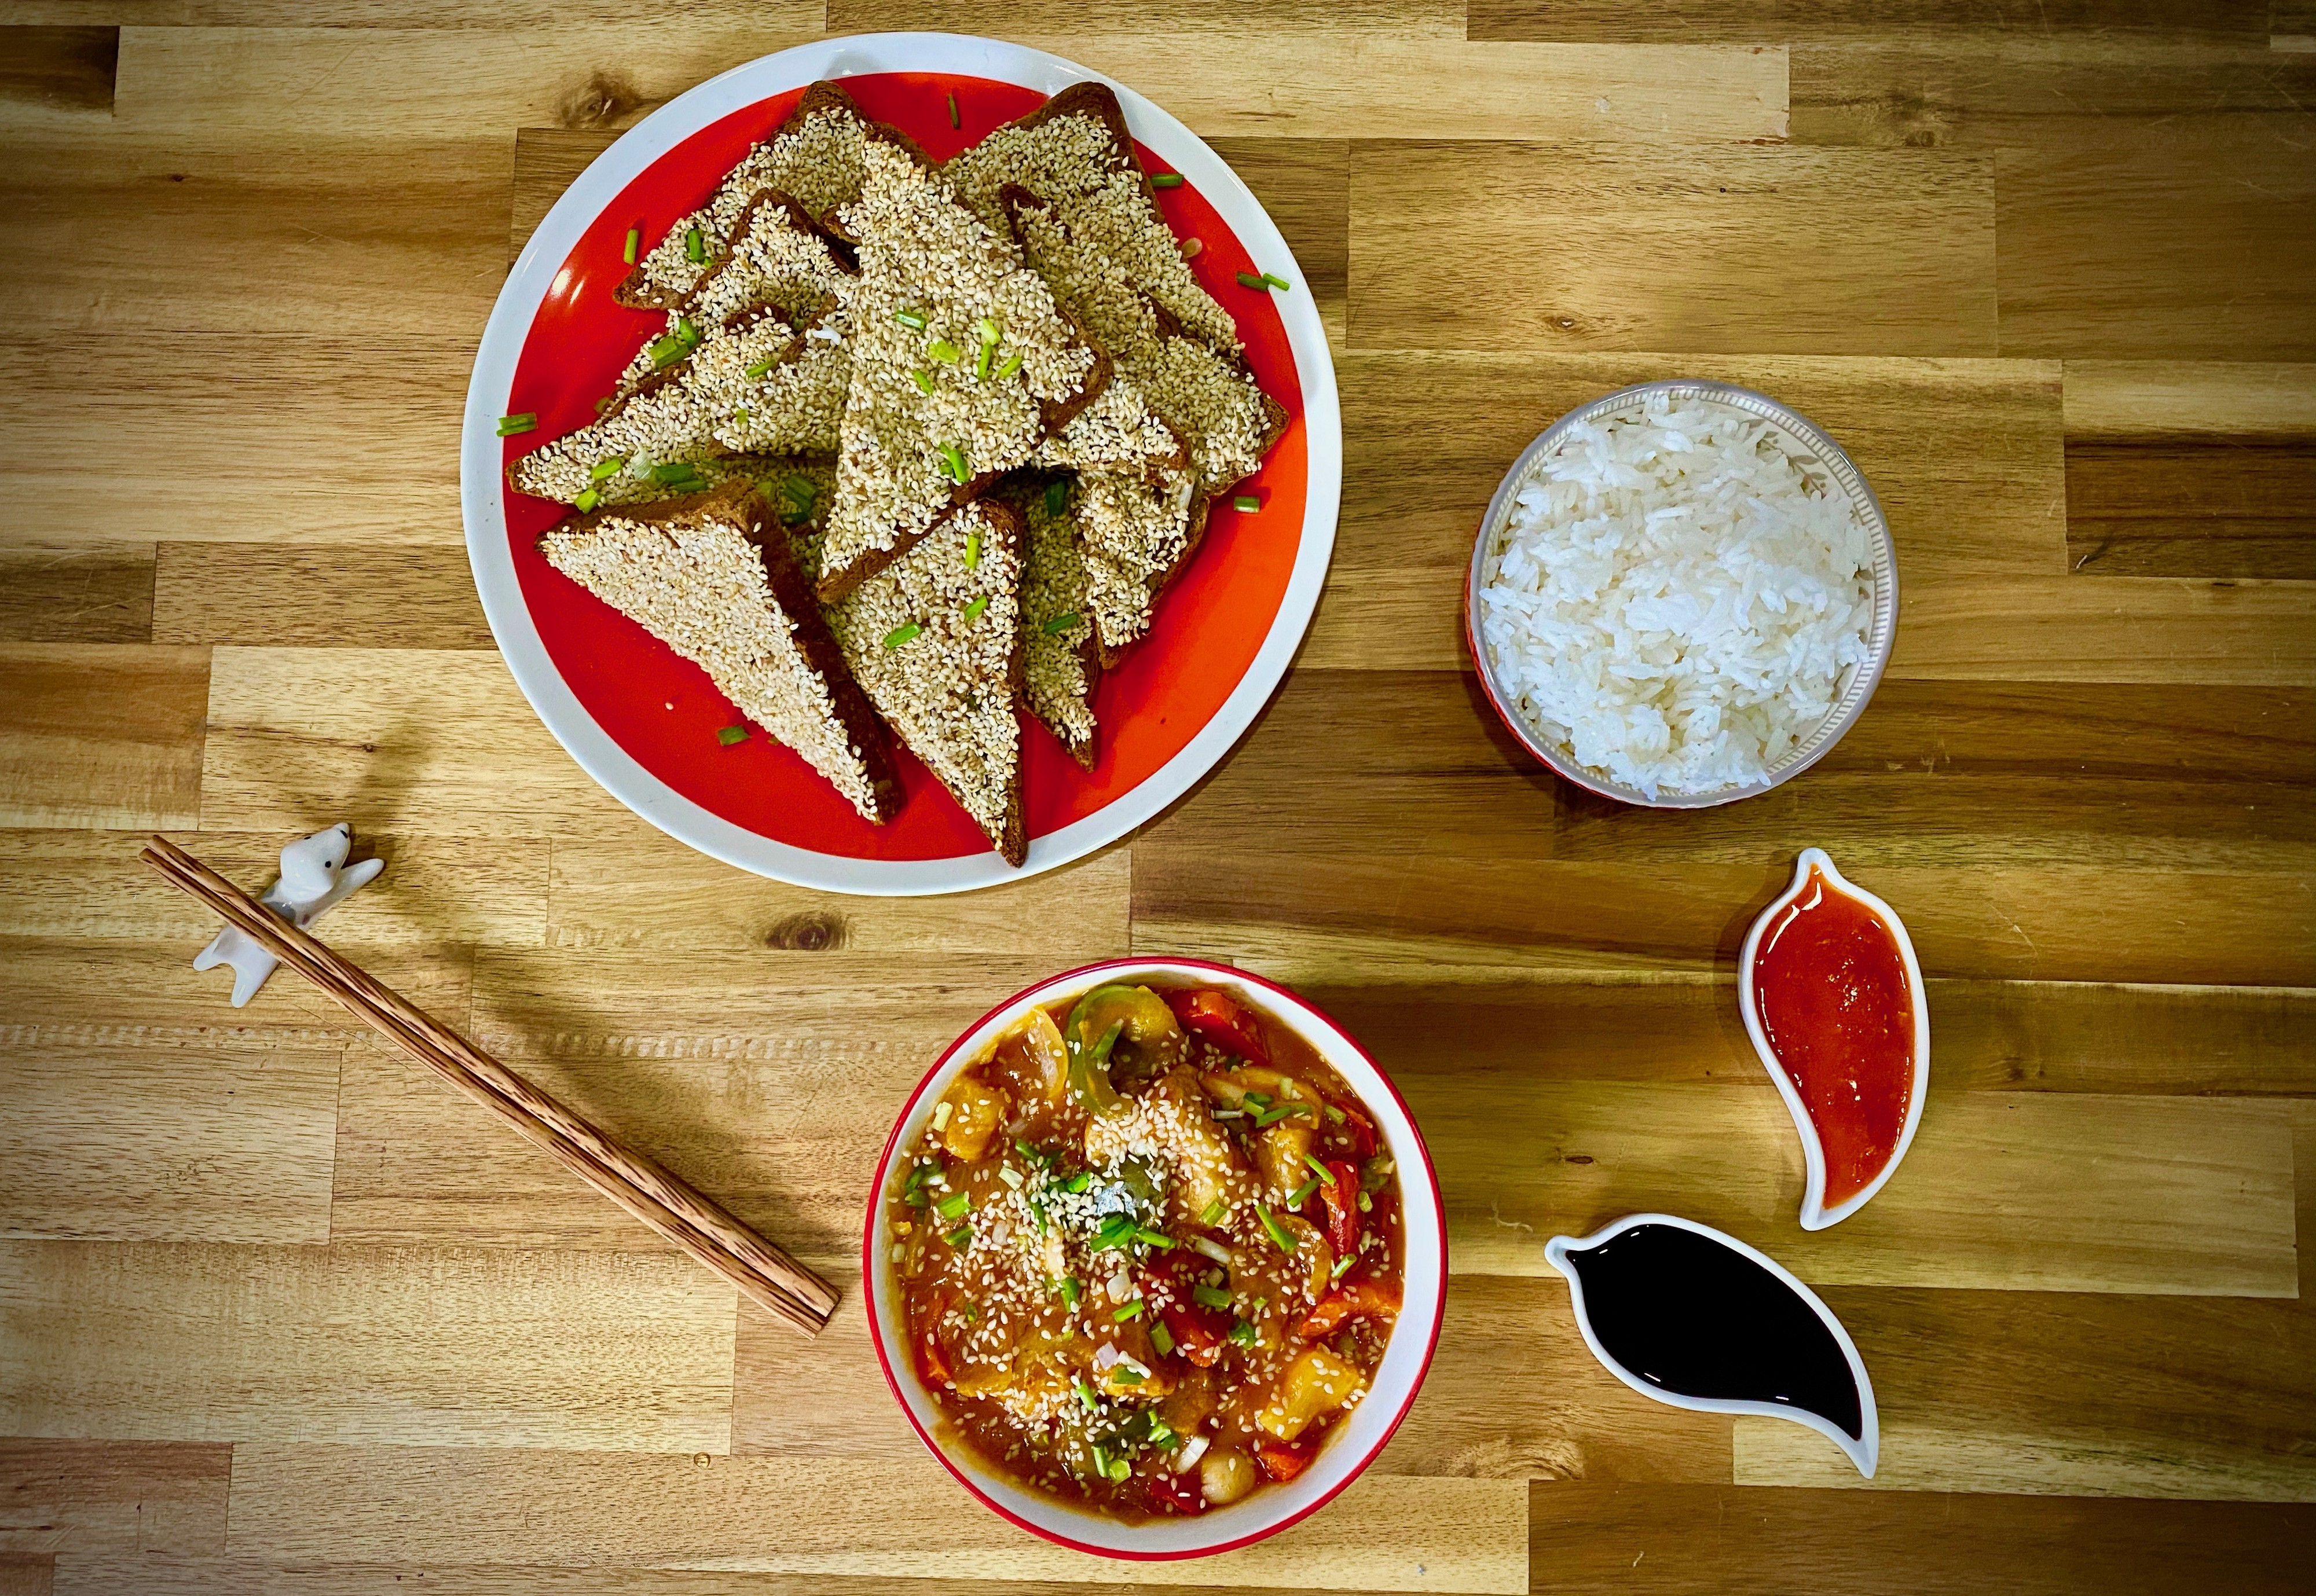 A spread of toast triangles coated in sesame seeds, warm red sweet and sour tofu, and white rice